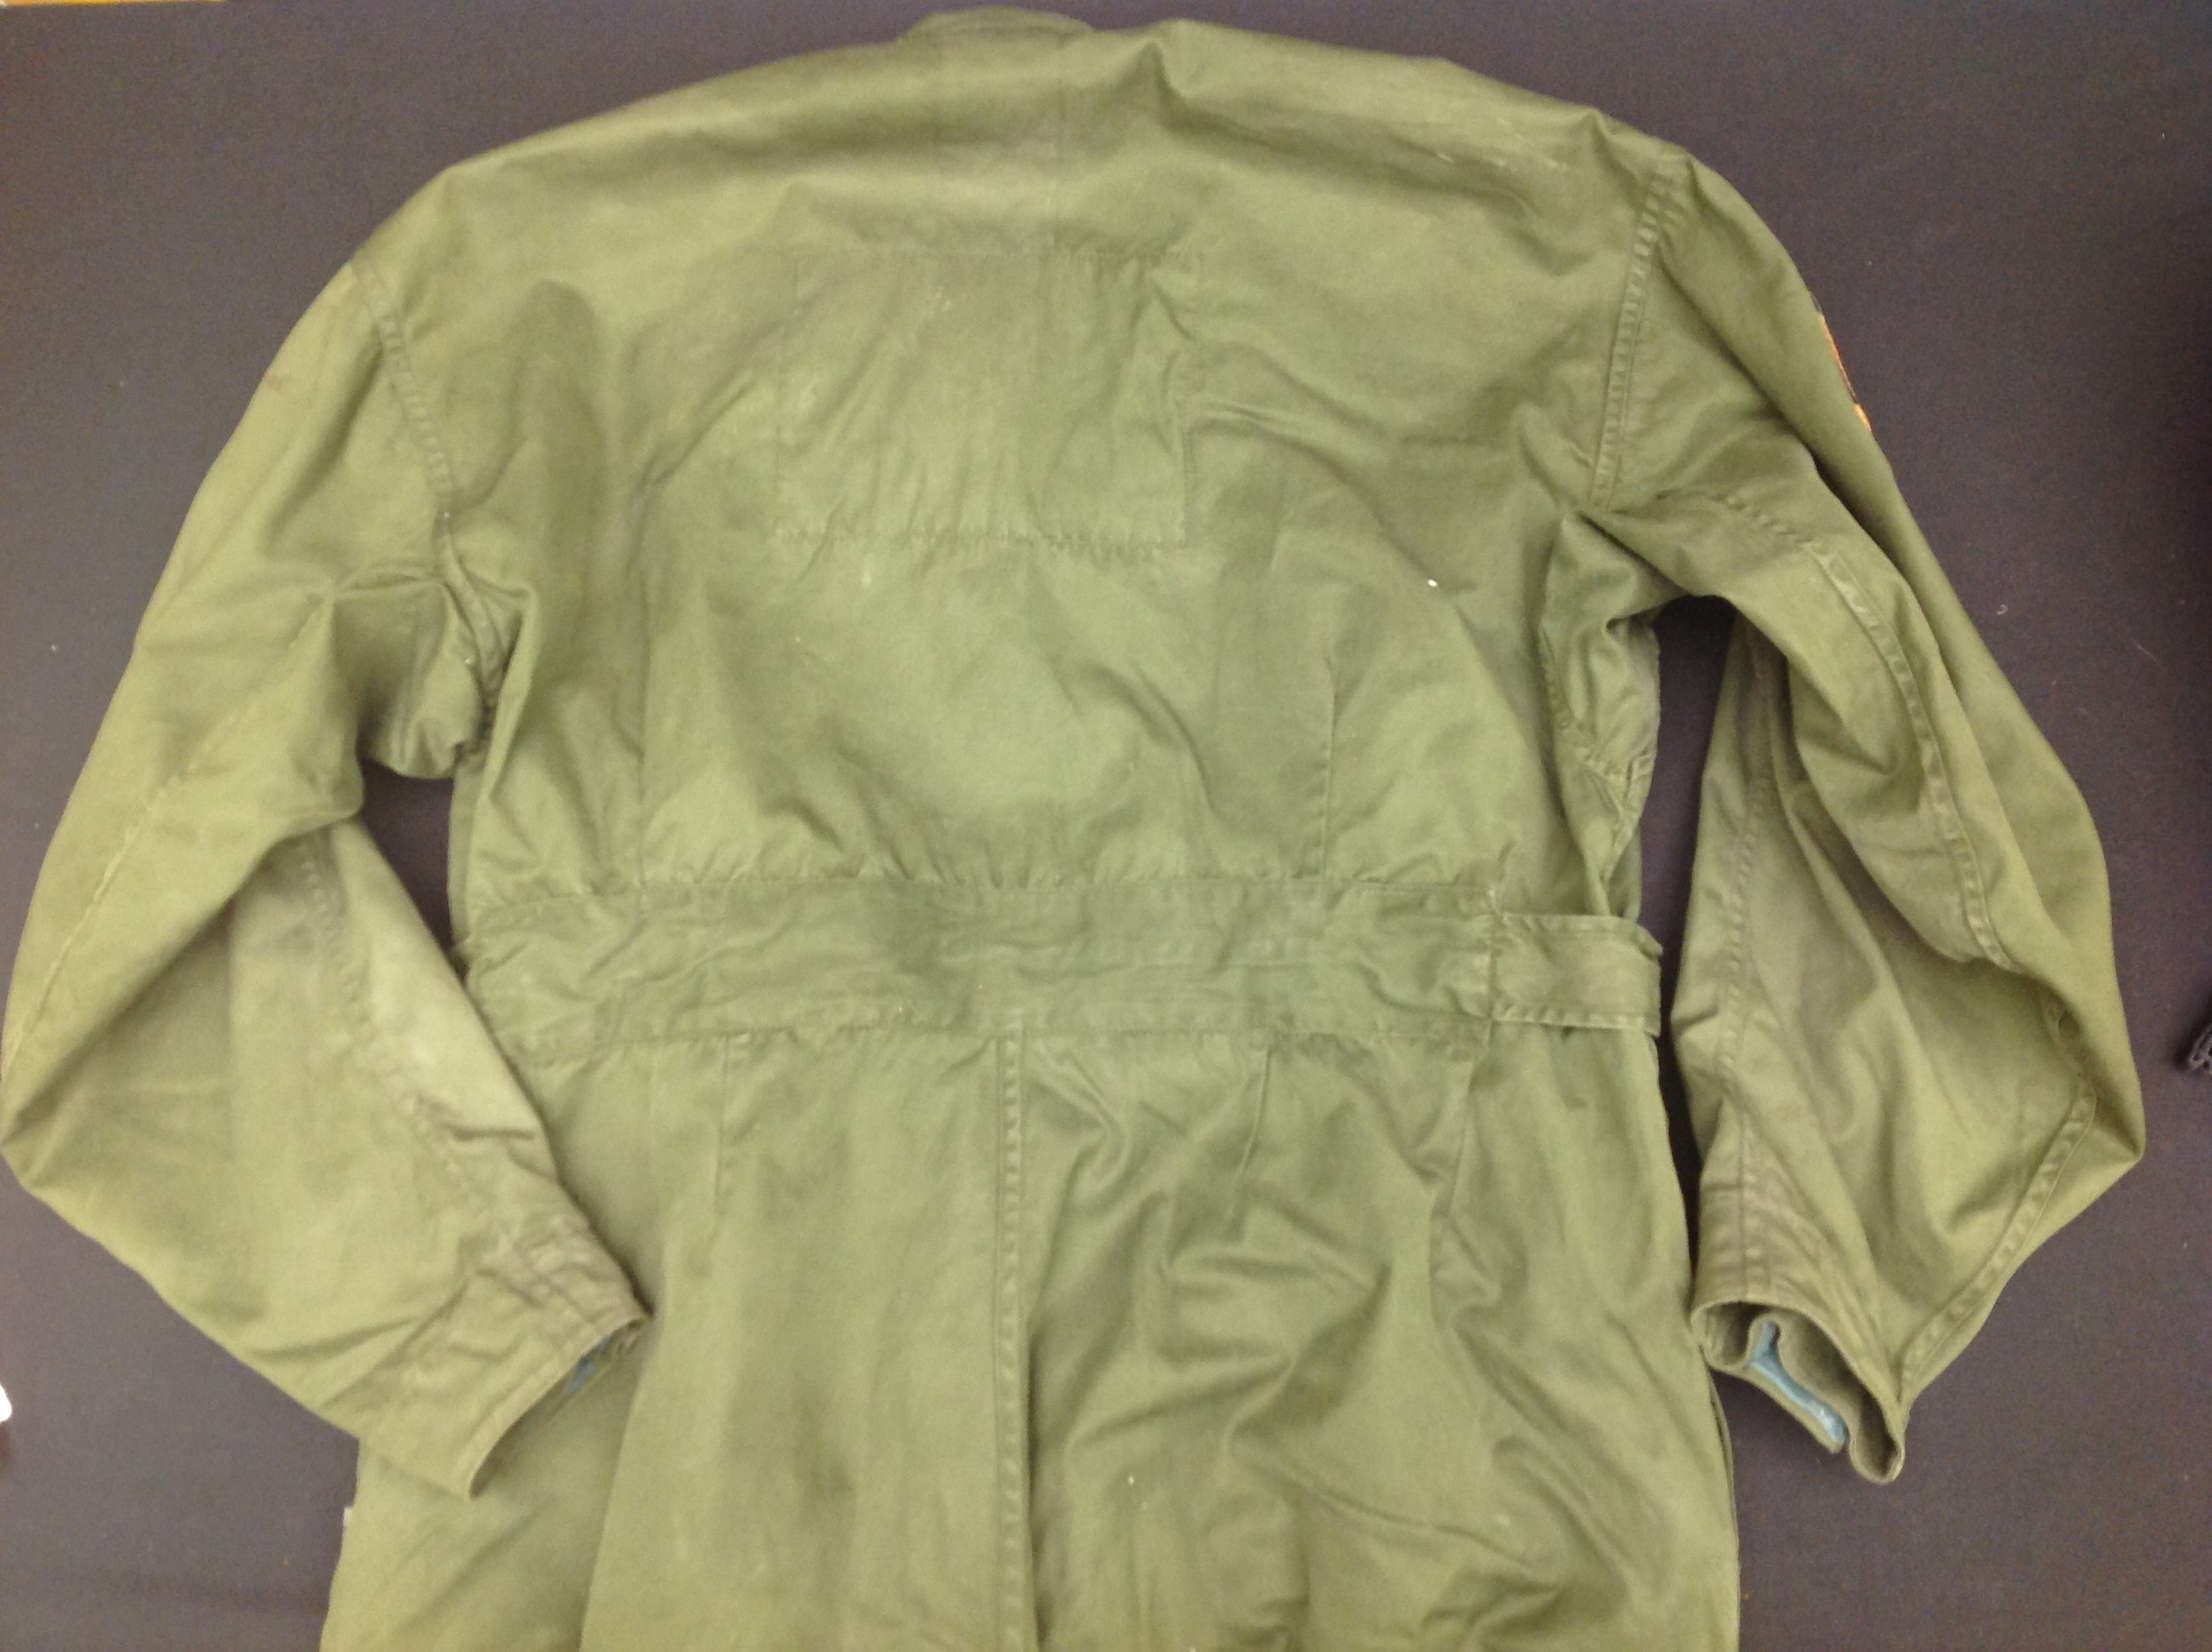 RAF Coverall, Flying MK 9, size 2. Complete with a 1985 map of the Low Countries in pocket and a - Image 7 of 8